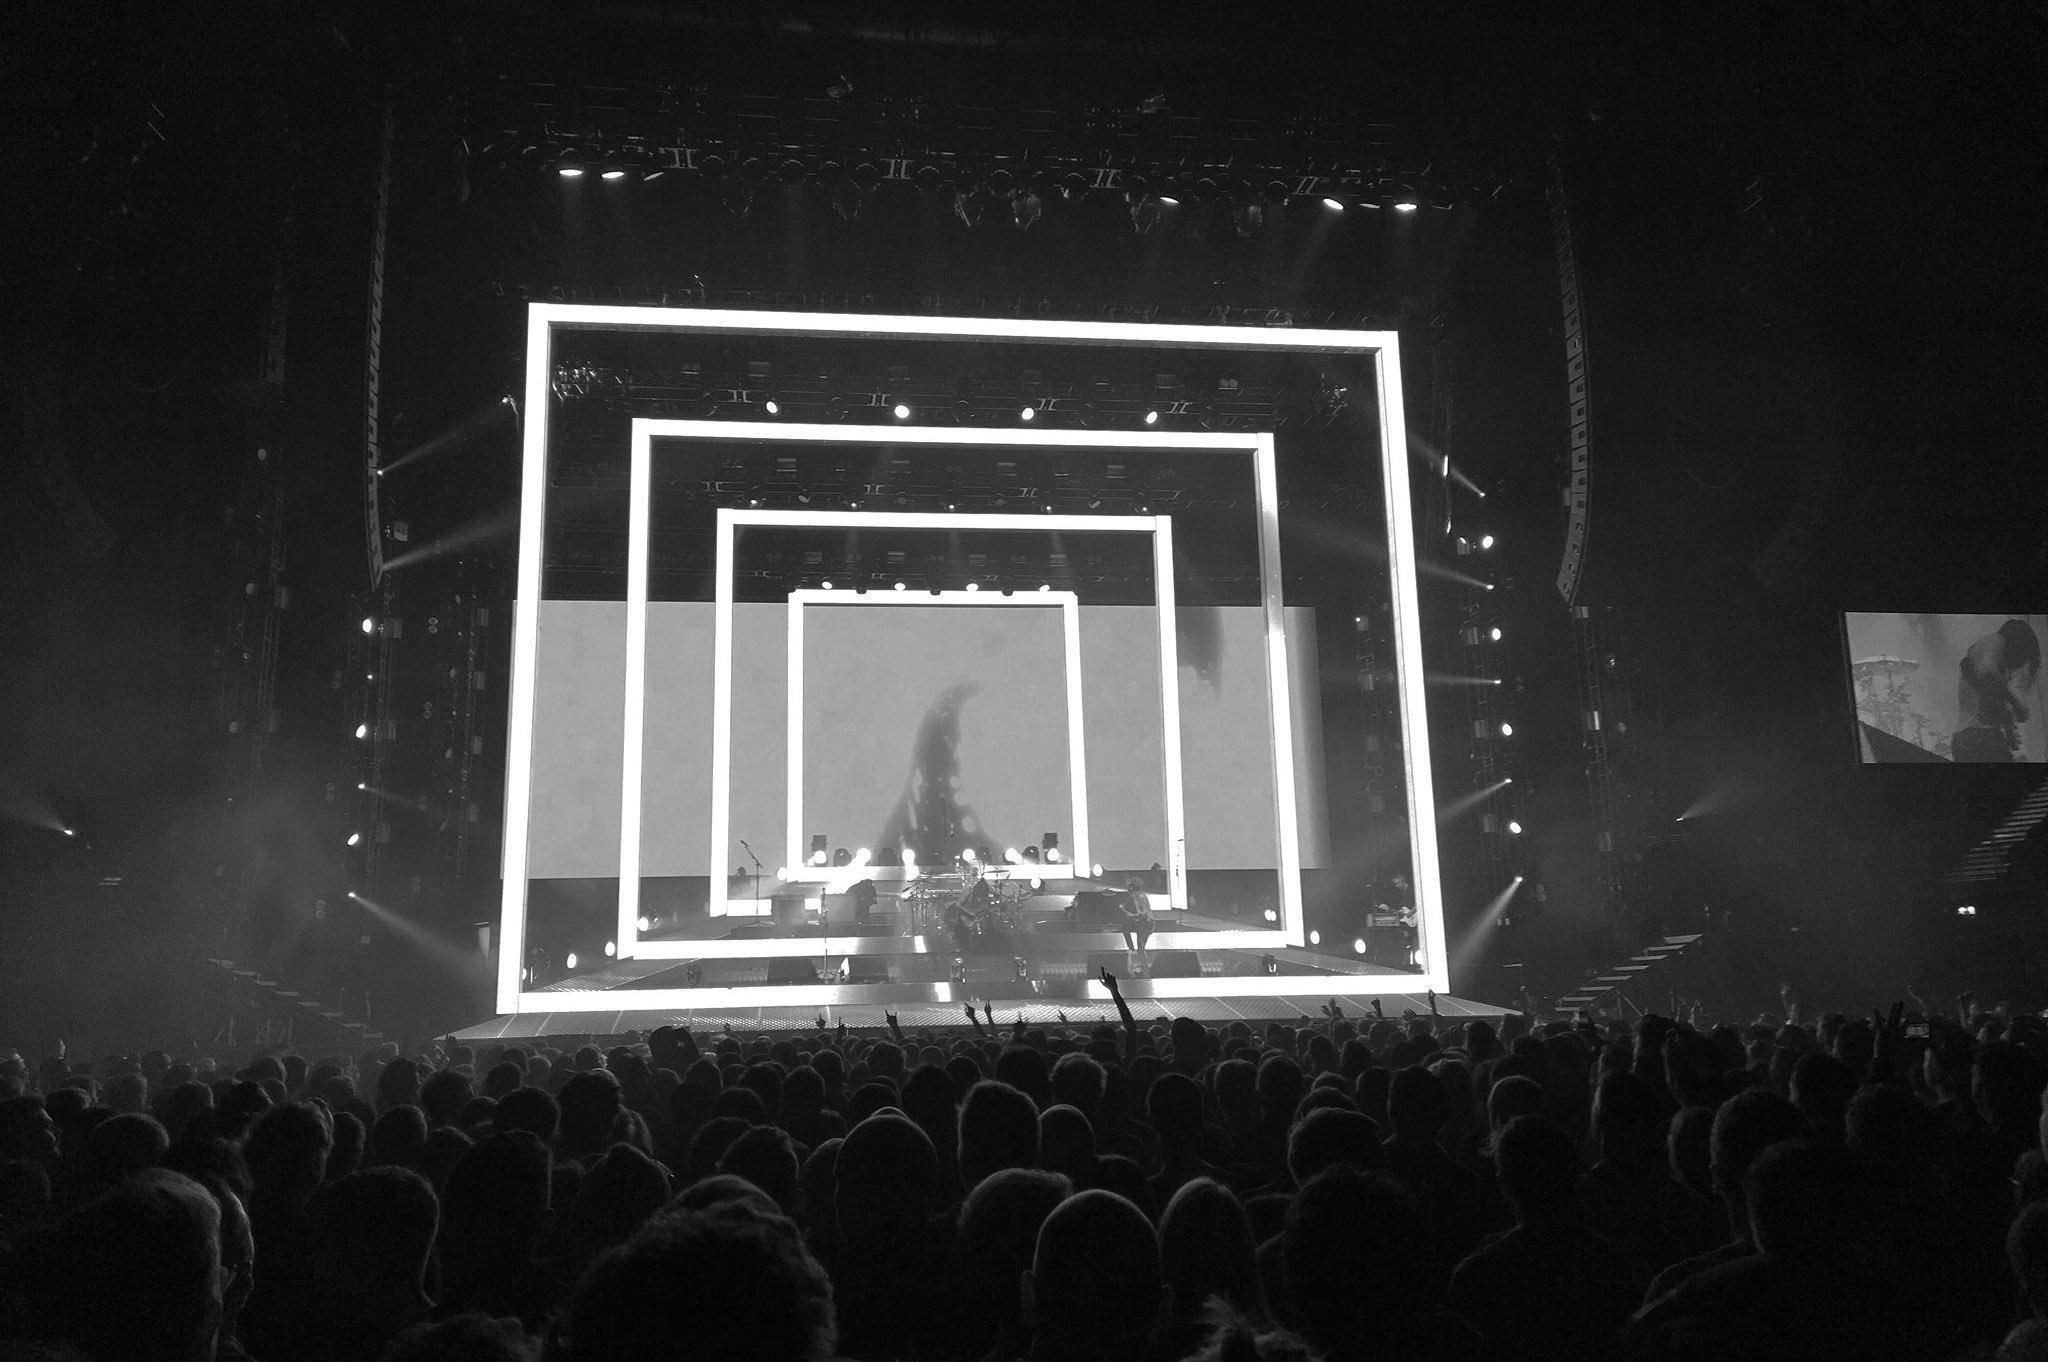 Who has caught Biffy Clyro on their current tour? Manchester was insane!  #BiffyClyro #BrandNewRock #Concert https://t.co/oSURzKrqrB